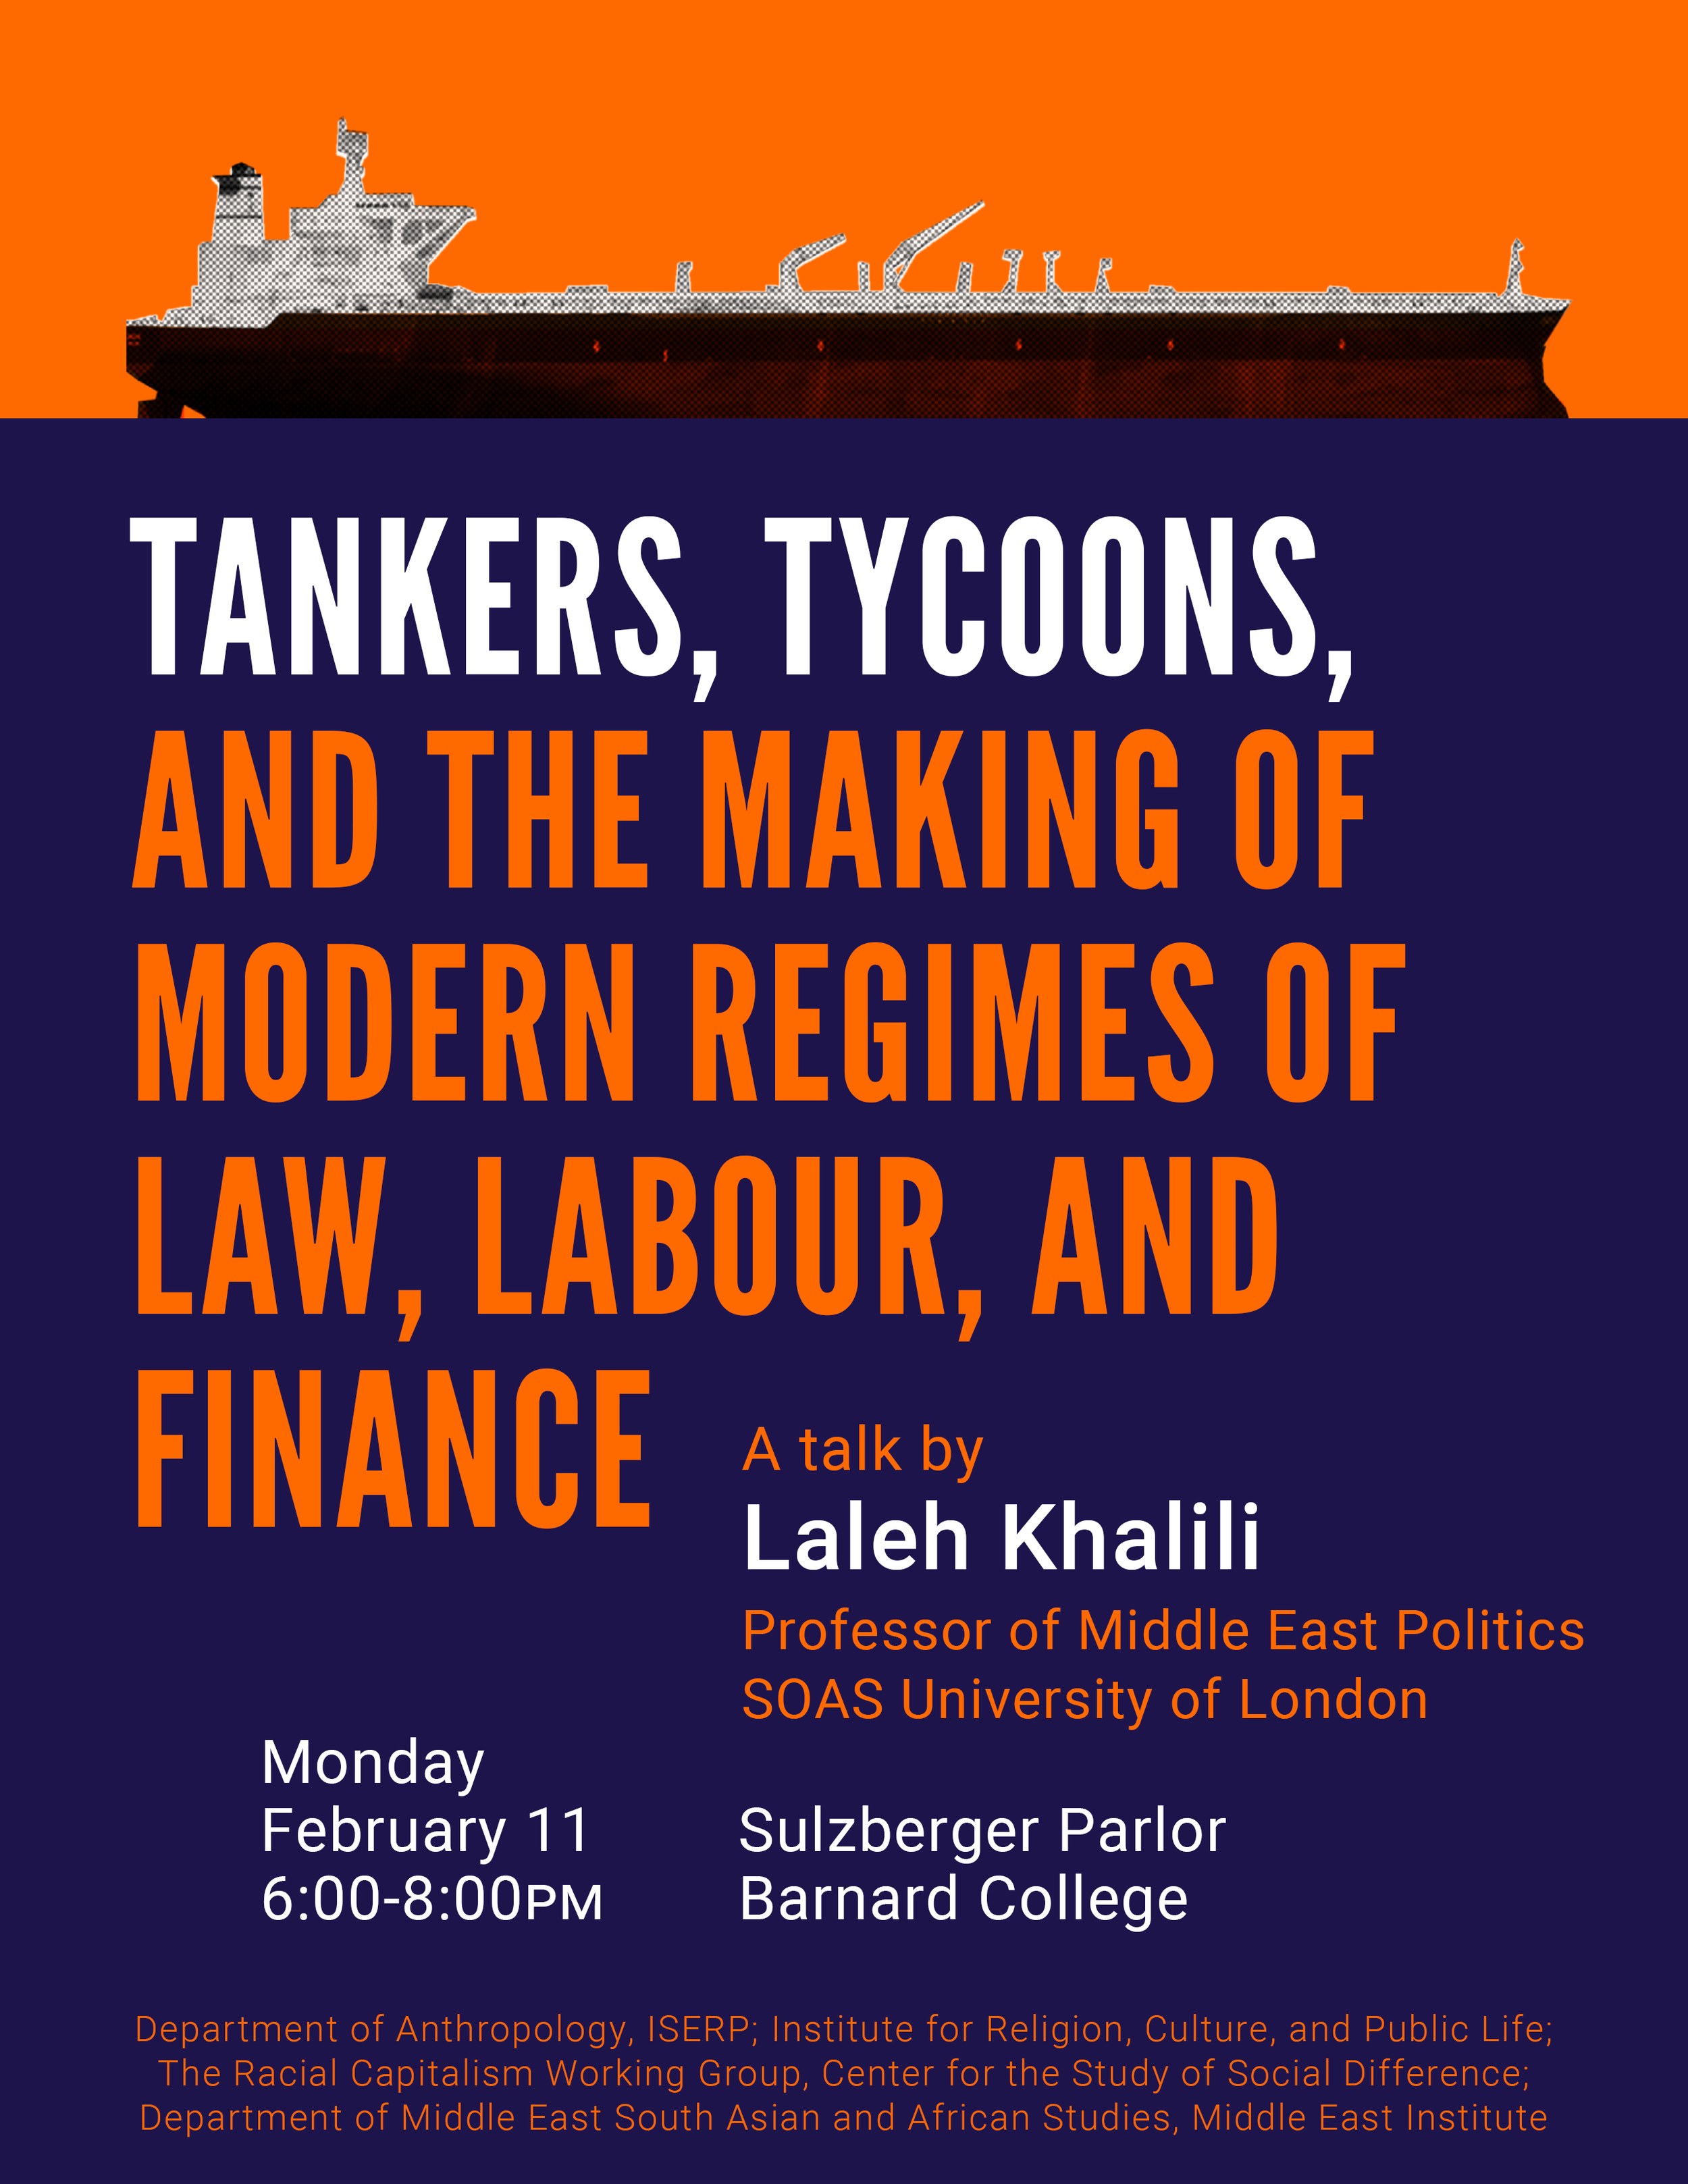 Laleh Khalili Lecture UPDATED SPONSORS 01 23 2019.png